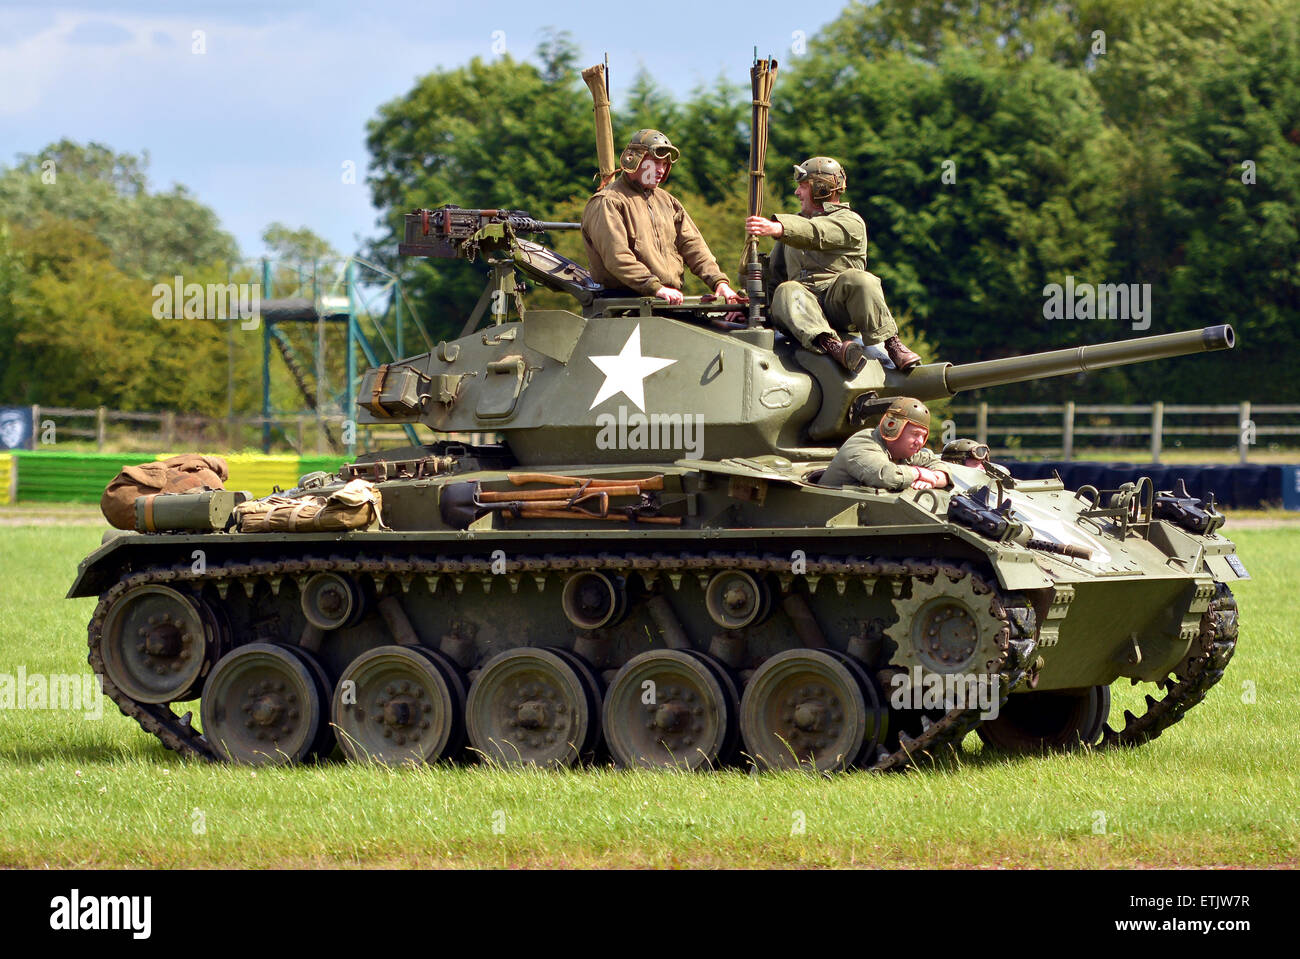 World War Two American Chafe Tank and crew ,world war 2 display at the Croft in Darlington 2016 - Stock Image